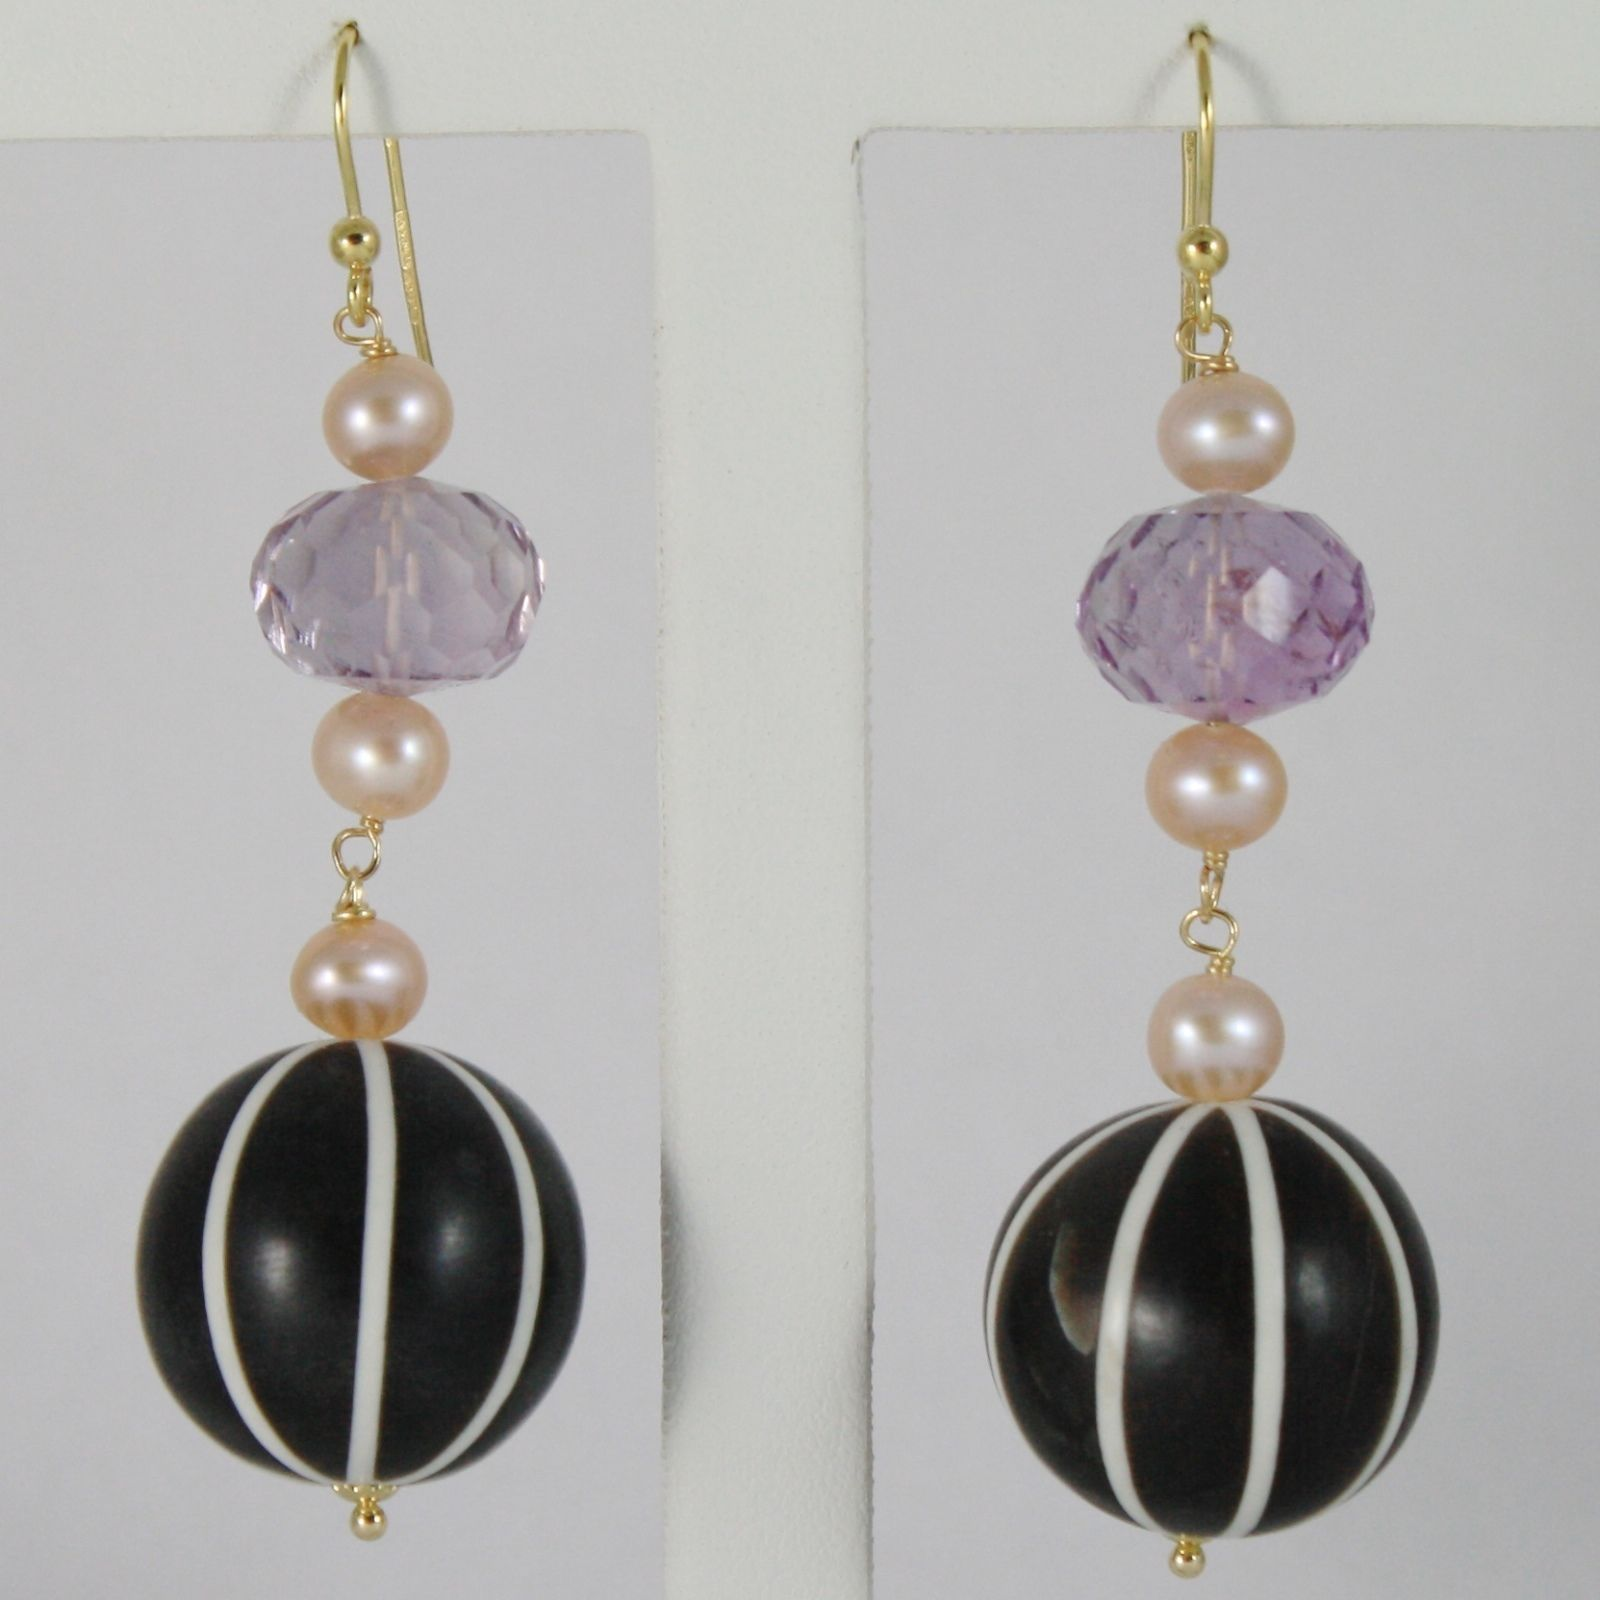 18K YELLOW GOLD PENDANT EARRINGS WITH BIG STRIPED HORN, PINK PEARLS AND AMETHYST